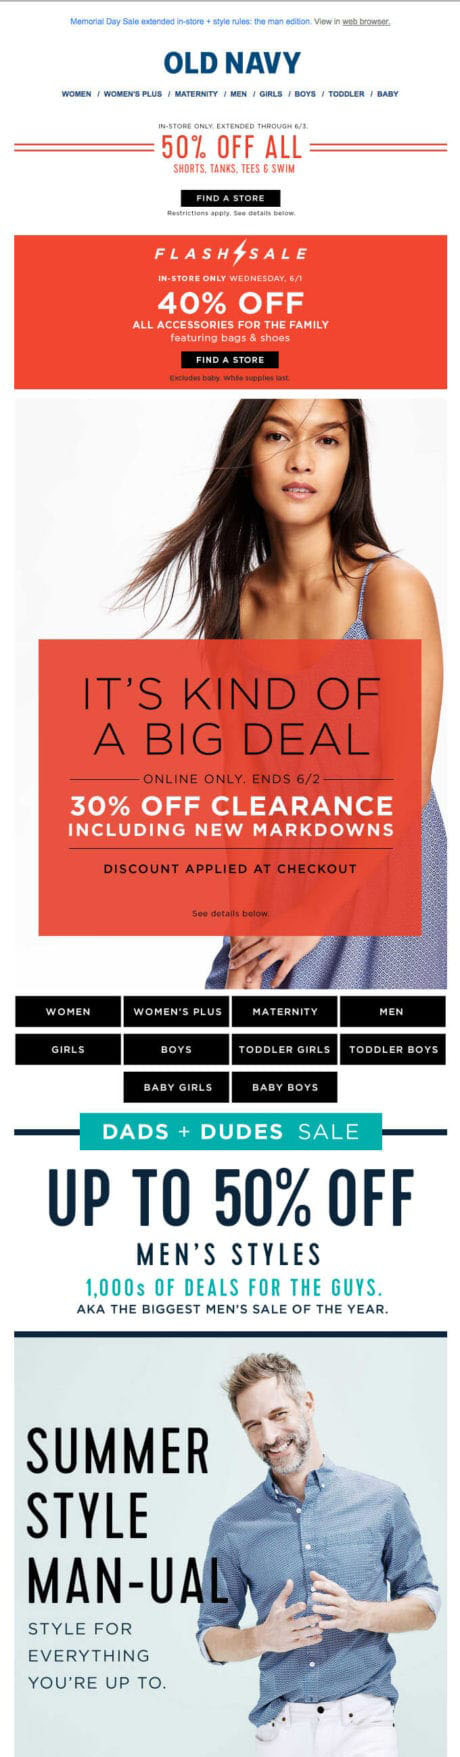 Promotional Emails - Special Offer Email - Old Navy